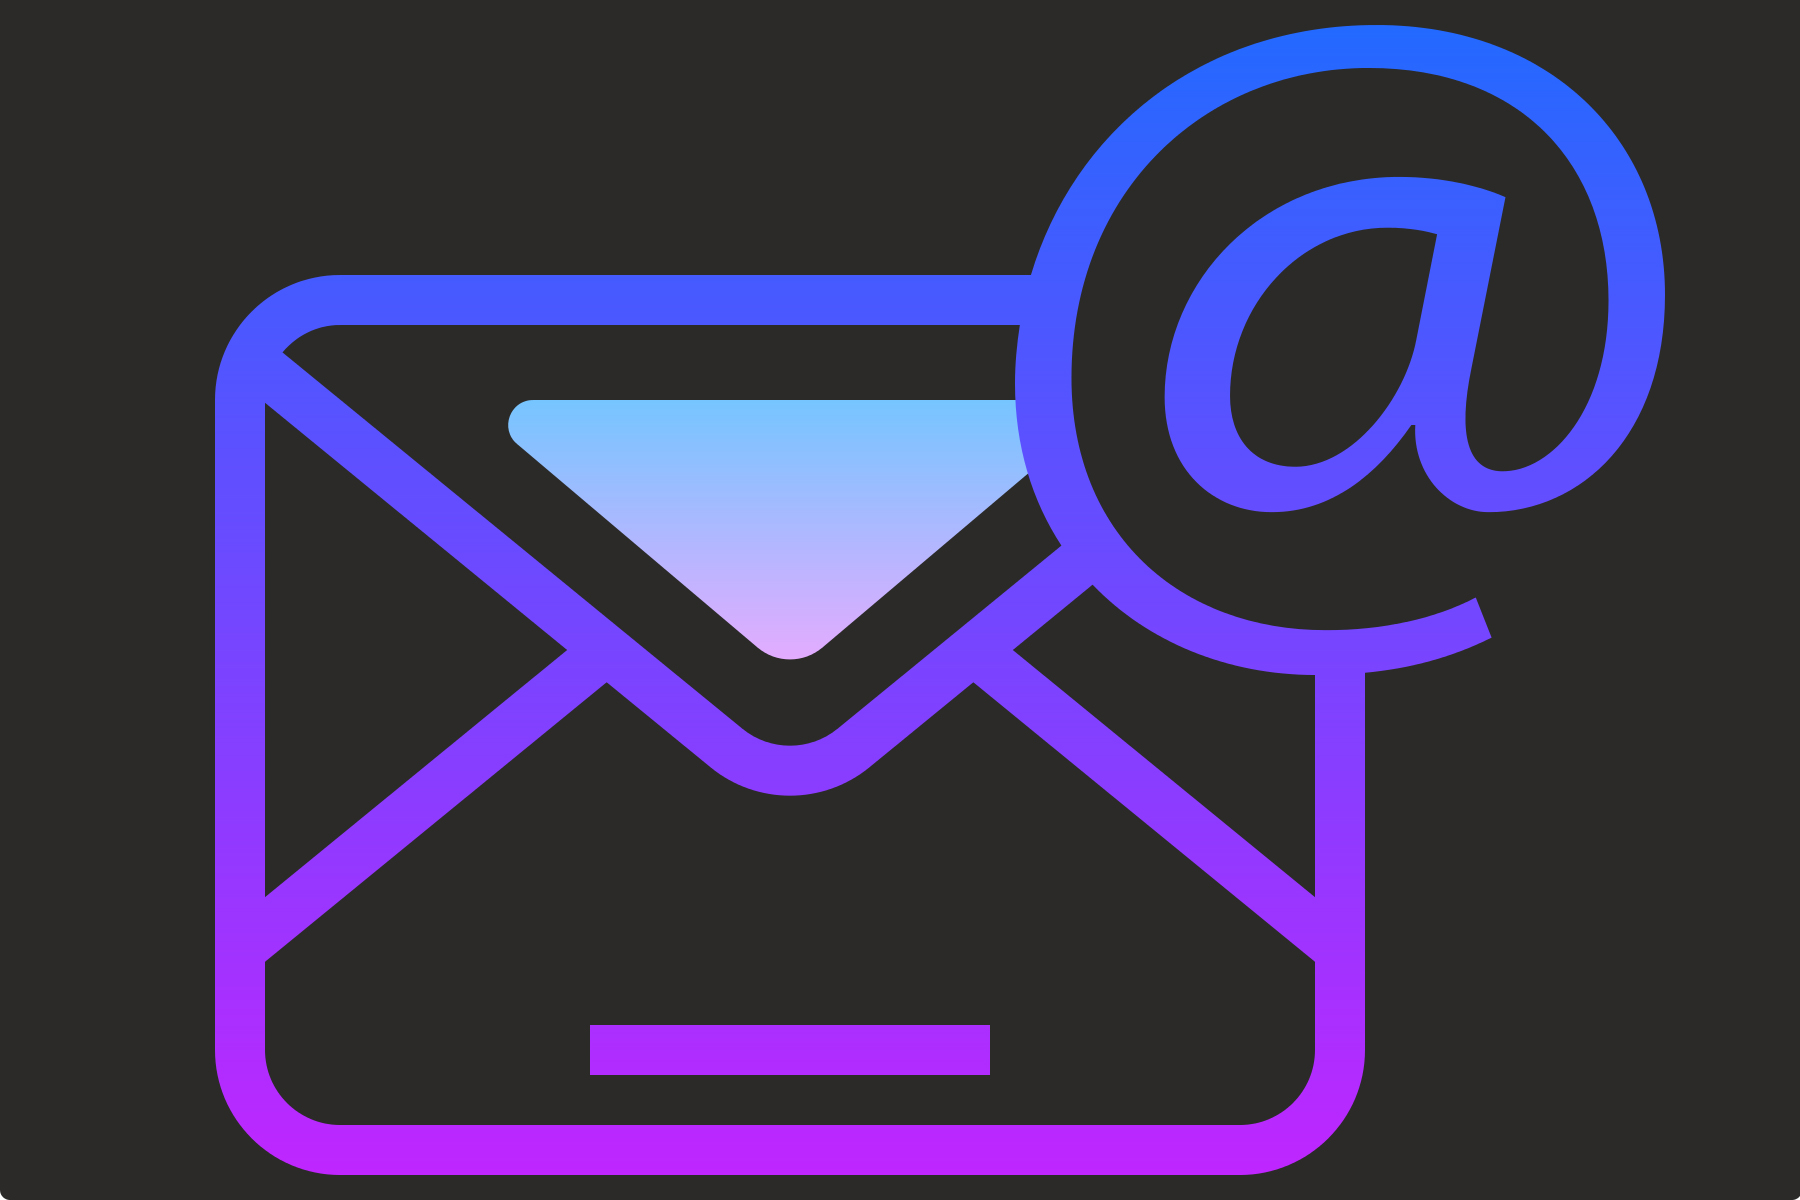 Icon for email coloured purple on a grey background